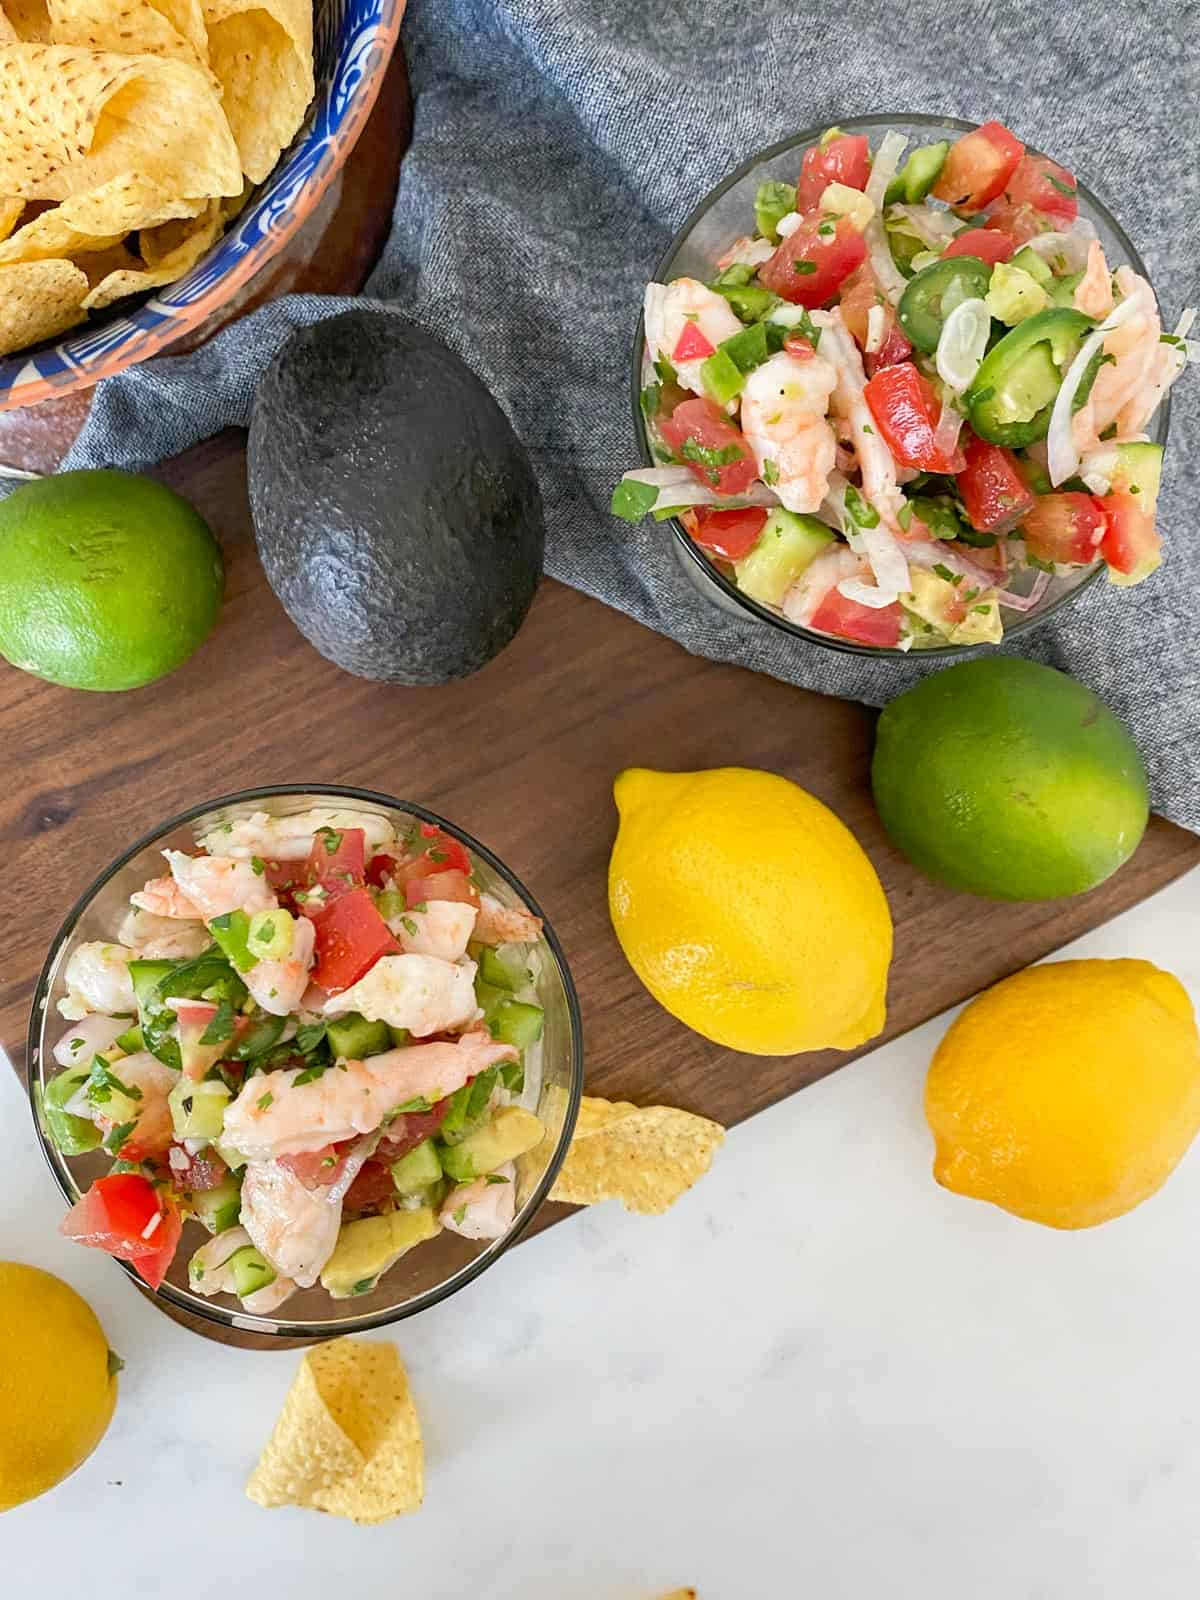 shrimp ceviche pictured with fresh lemons, limes, avocados, and tortilla chips